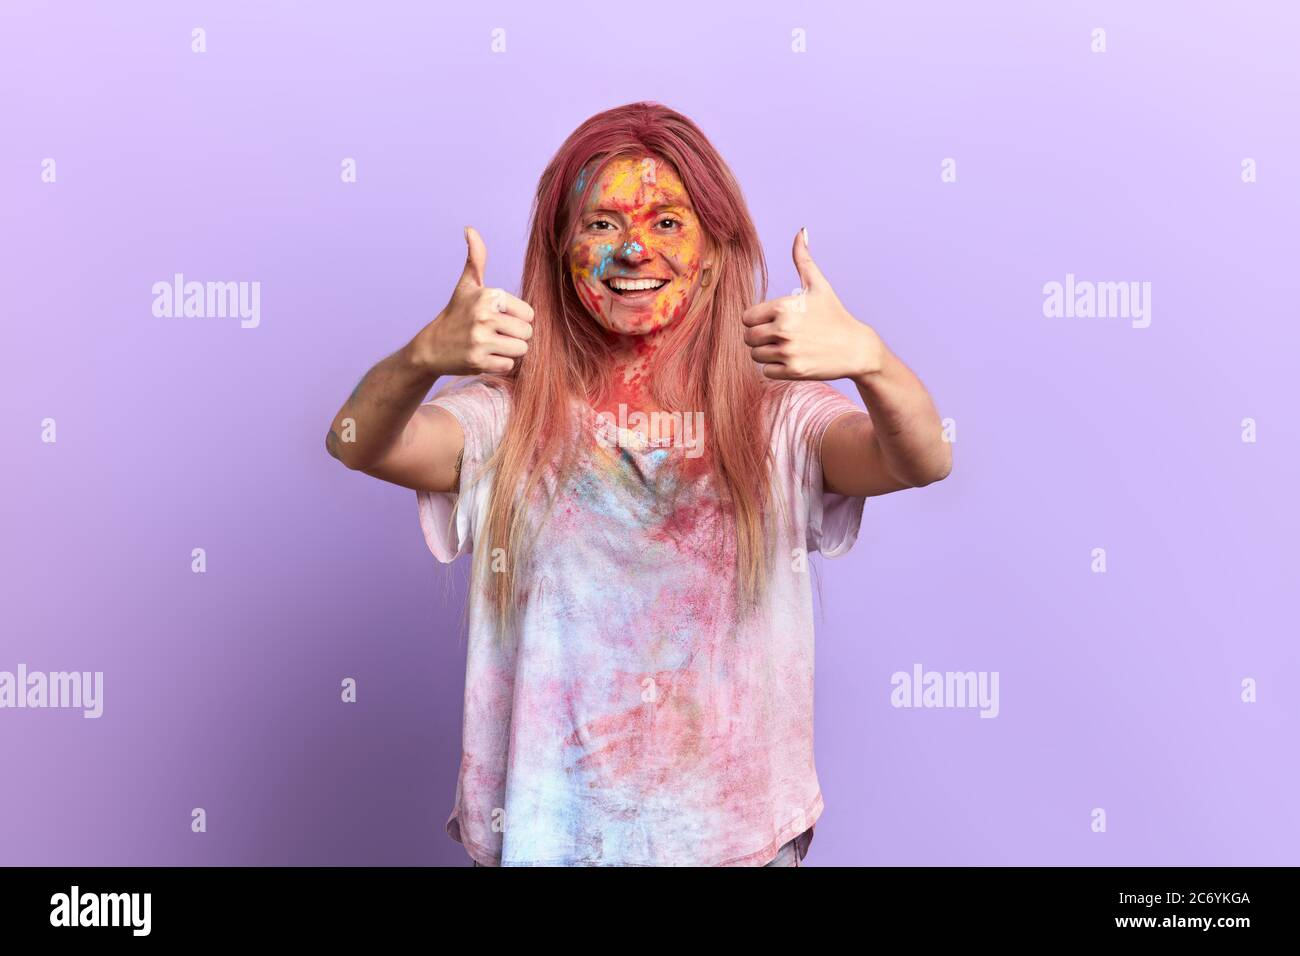 excited positive satisfied girl rejoicing at the color festival. close up portrait, isolated violet background, studio shot.gesture, symbol, body lang Stock Photo